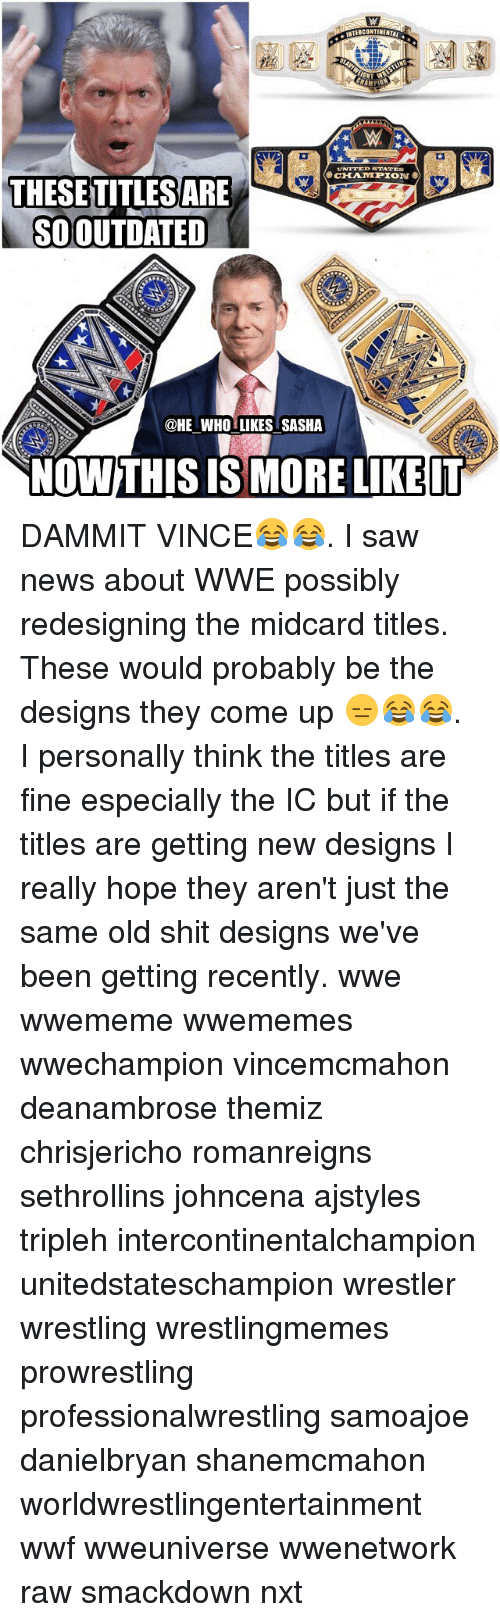 same old shit: CONTINENTAL  THESETITLESARE  SO OUTDATED  @HE WHO LIKES SASHA  NowTHIS IS MORE LIKE IT DAMMIT VINCE😂😂. I saw news about WWE possibly redesigning the midcard titles. These would probably be the designs they come up 😑😂😂. I personally think the titles are fine especially the IC but if the titles are getting new designs I really hope they aren't just the same old shit designs we've been getting recently. wwe wwememe wwememes wwechampion vincemcmahon deanambrose themiz chrisjericho romanreigns sethrollins johncena ajstyles tripleh intercontinentalchampion unitedstateschampion wrestler wrestling wrestlingmemes prowrestling professionalwrestling samoajoe danielbryan shanemcmahon worldwrestlingentertainment wwf wweuniverse wwenetwork raw smackdown nxt